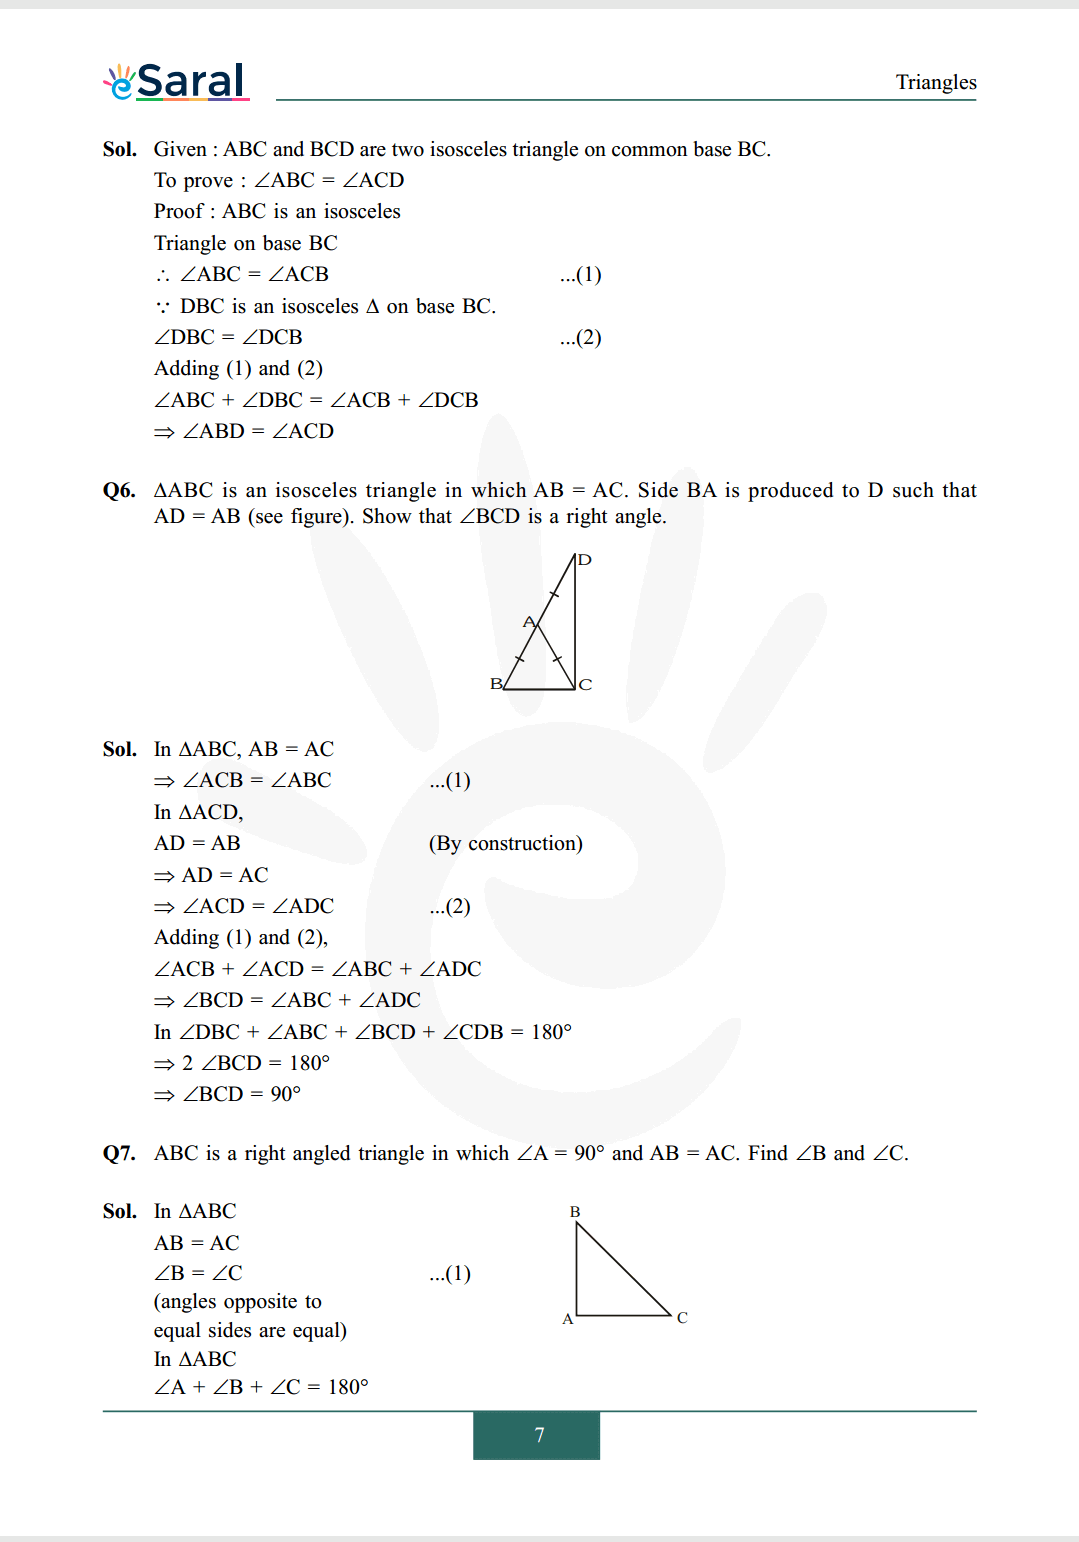 Class 9 maths chapter 7 exercise 7.2 solutions Image 3